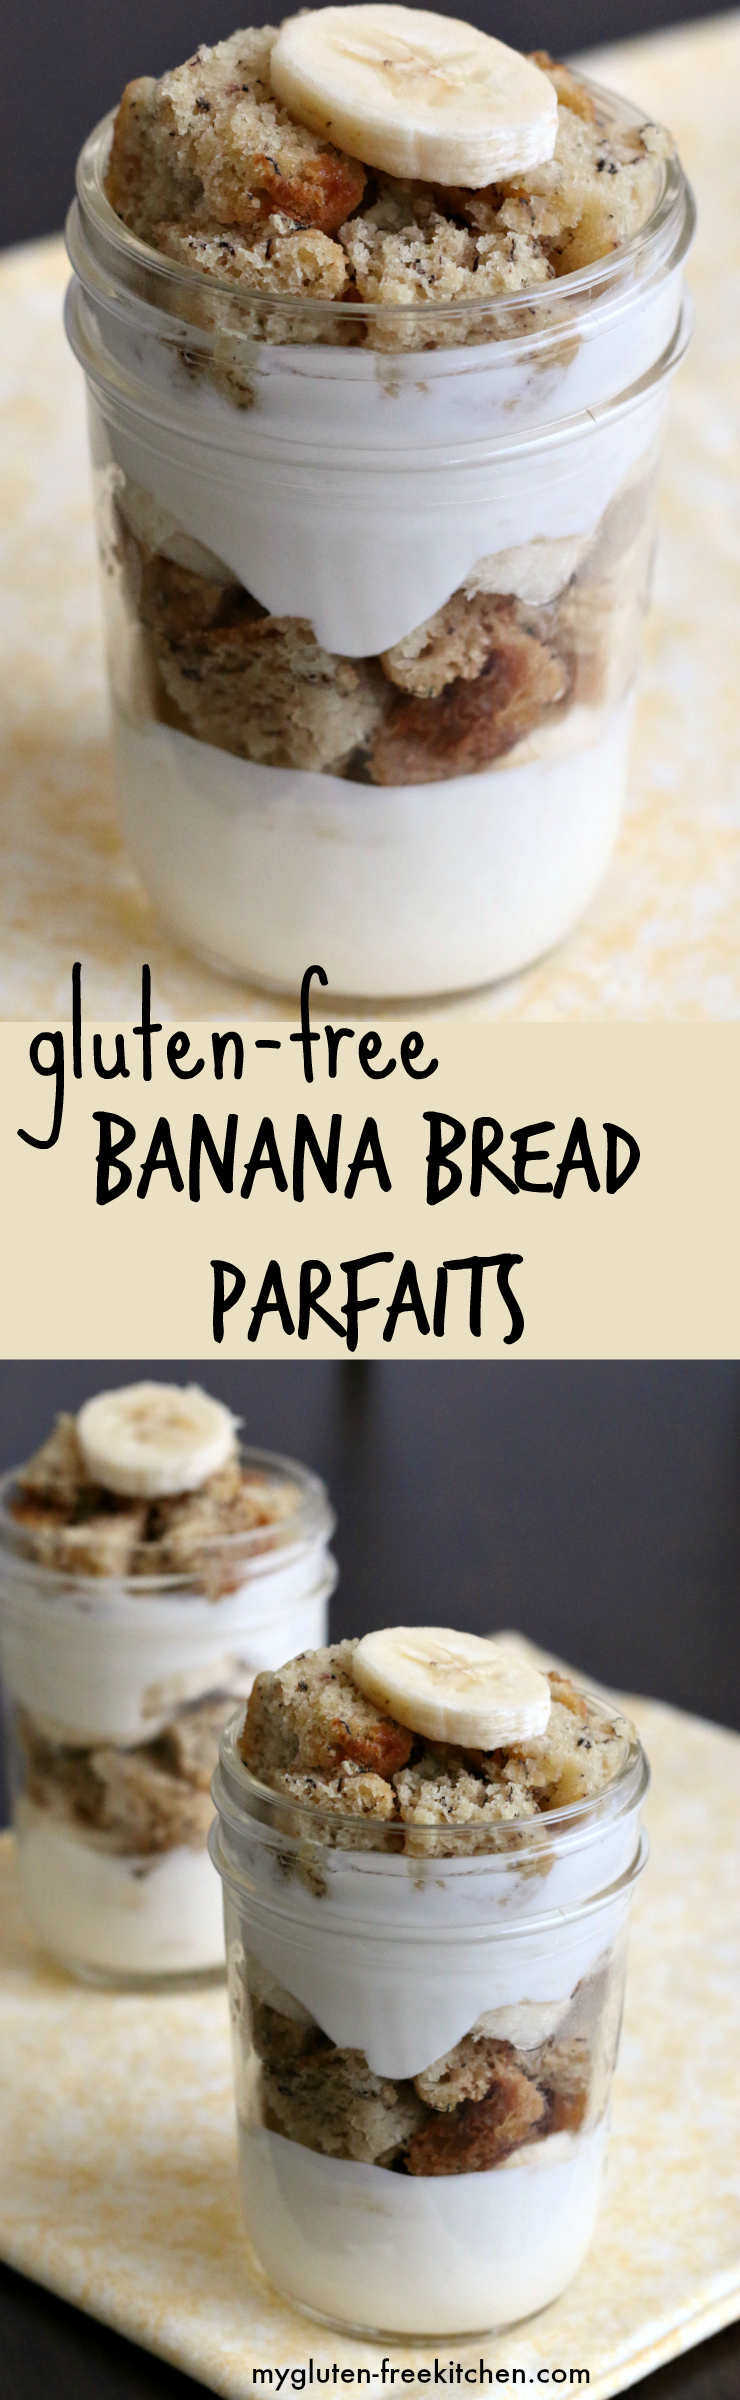 Gluten-free Banana Bread Yogurt Parfaits - This recipe got two thumbs up from everyone in the family!